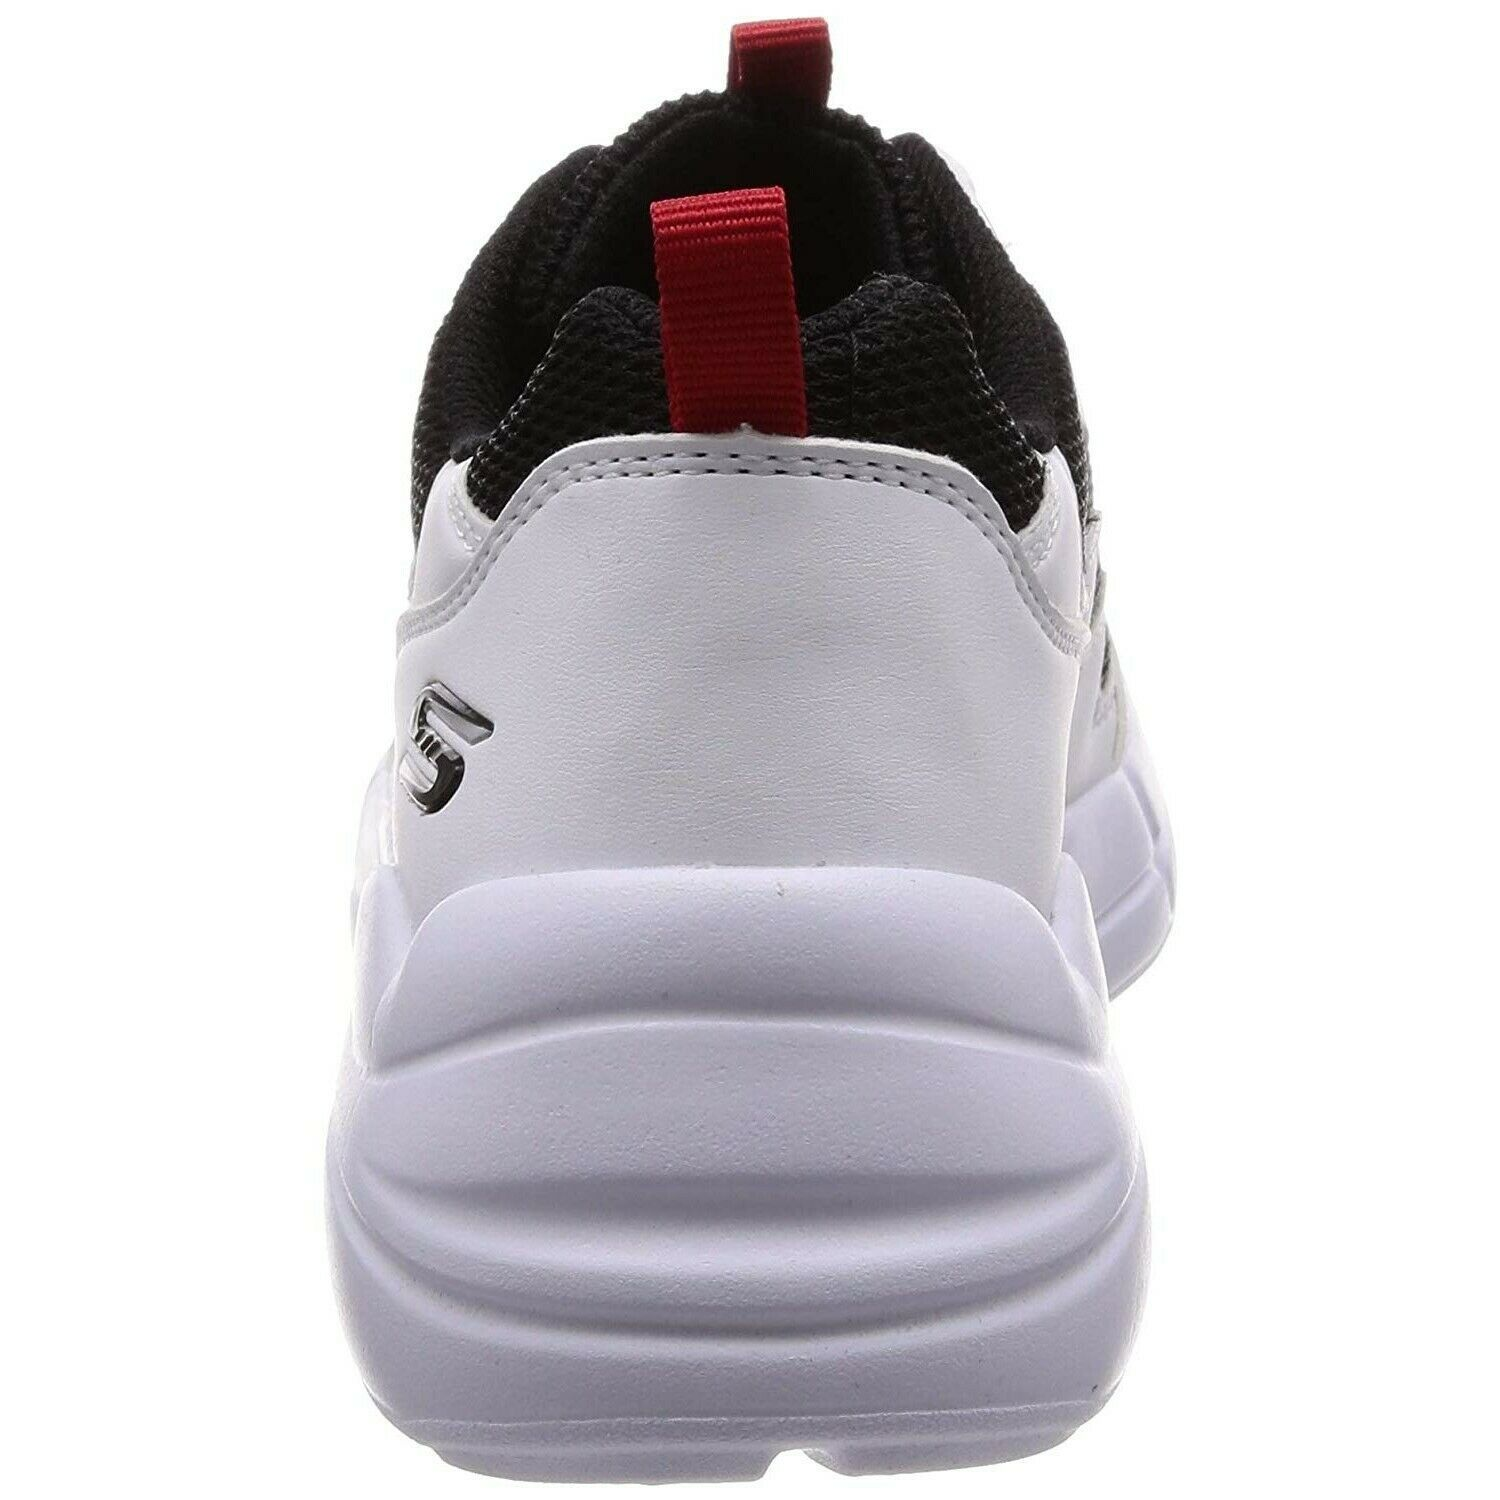 NWT Womens SKECHERS Bobs Primo Popsicle Sneaker Comfort Shoes White Black 33122